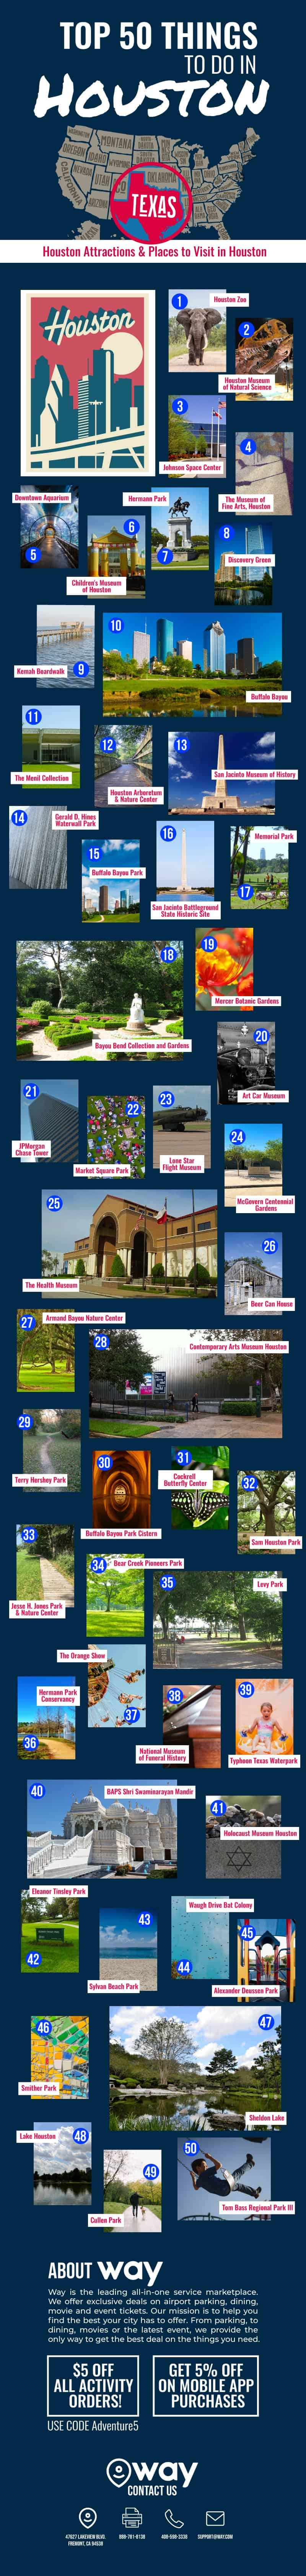 50 Things to Do in Houston